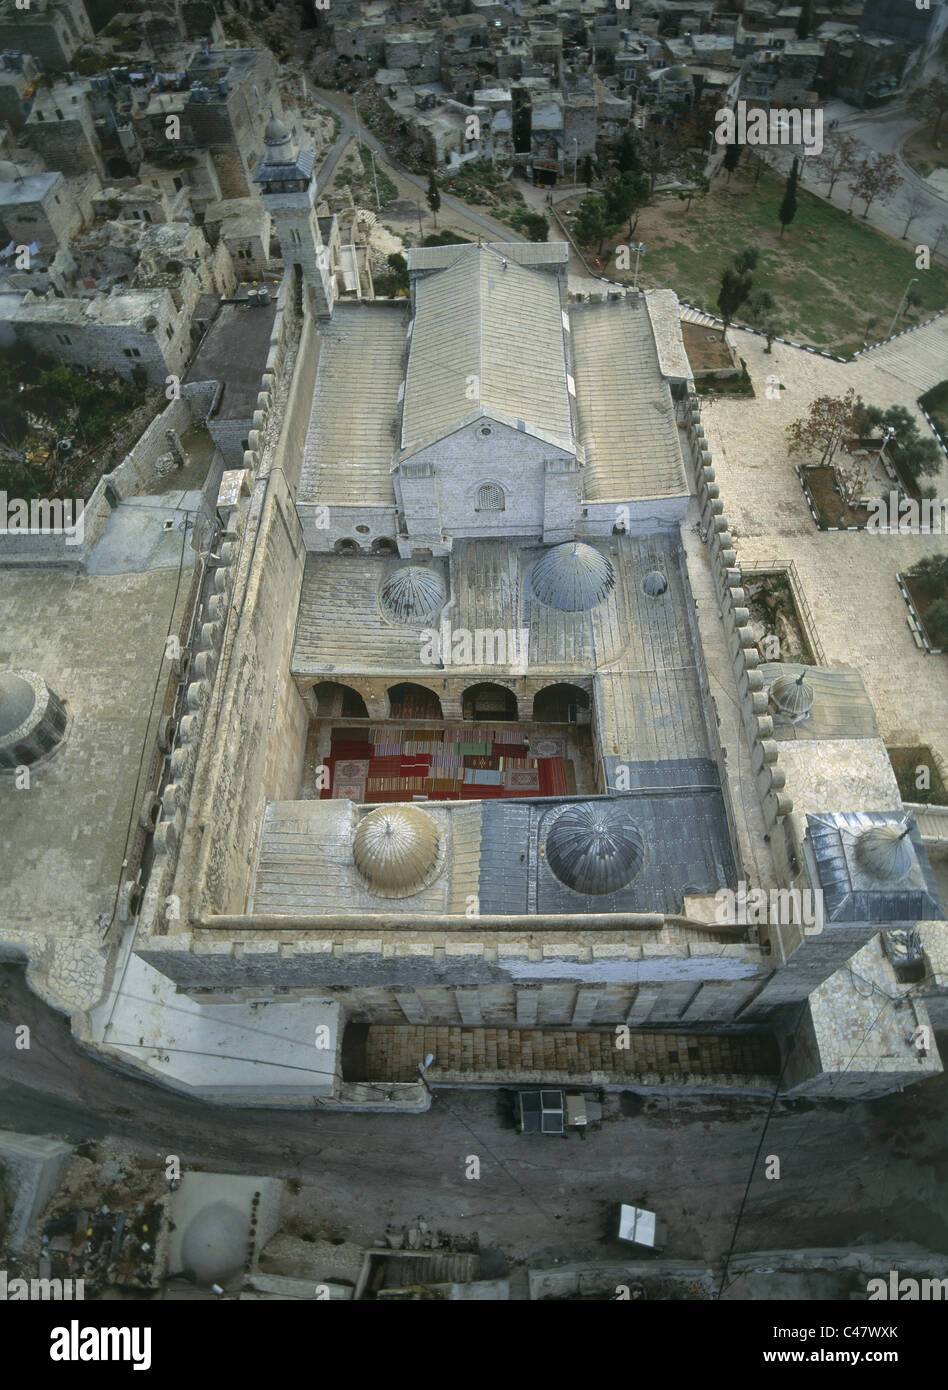 Aerial view of the Haram el Kahalil compound within the modern city of Hevron - Stock Image